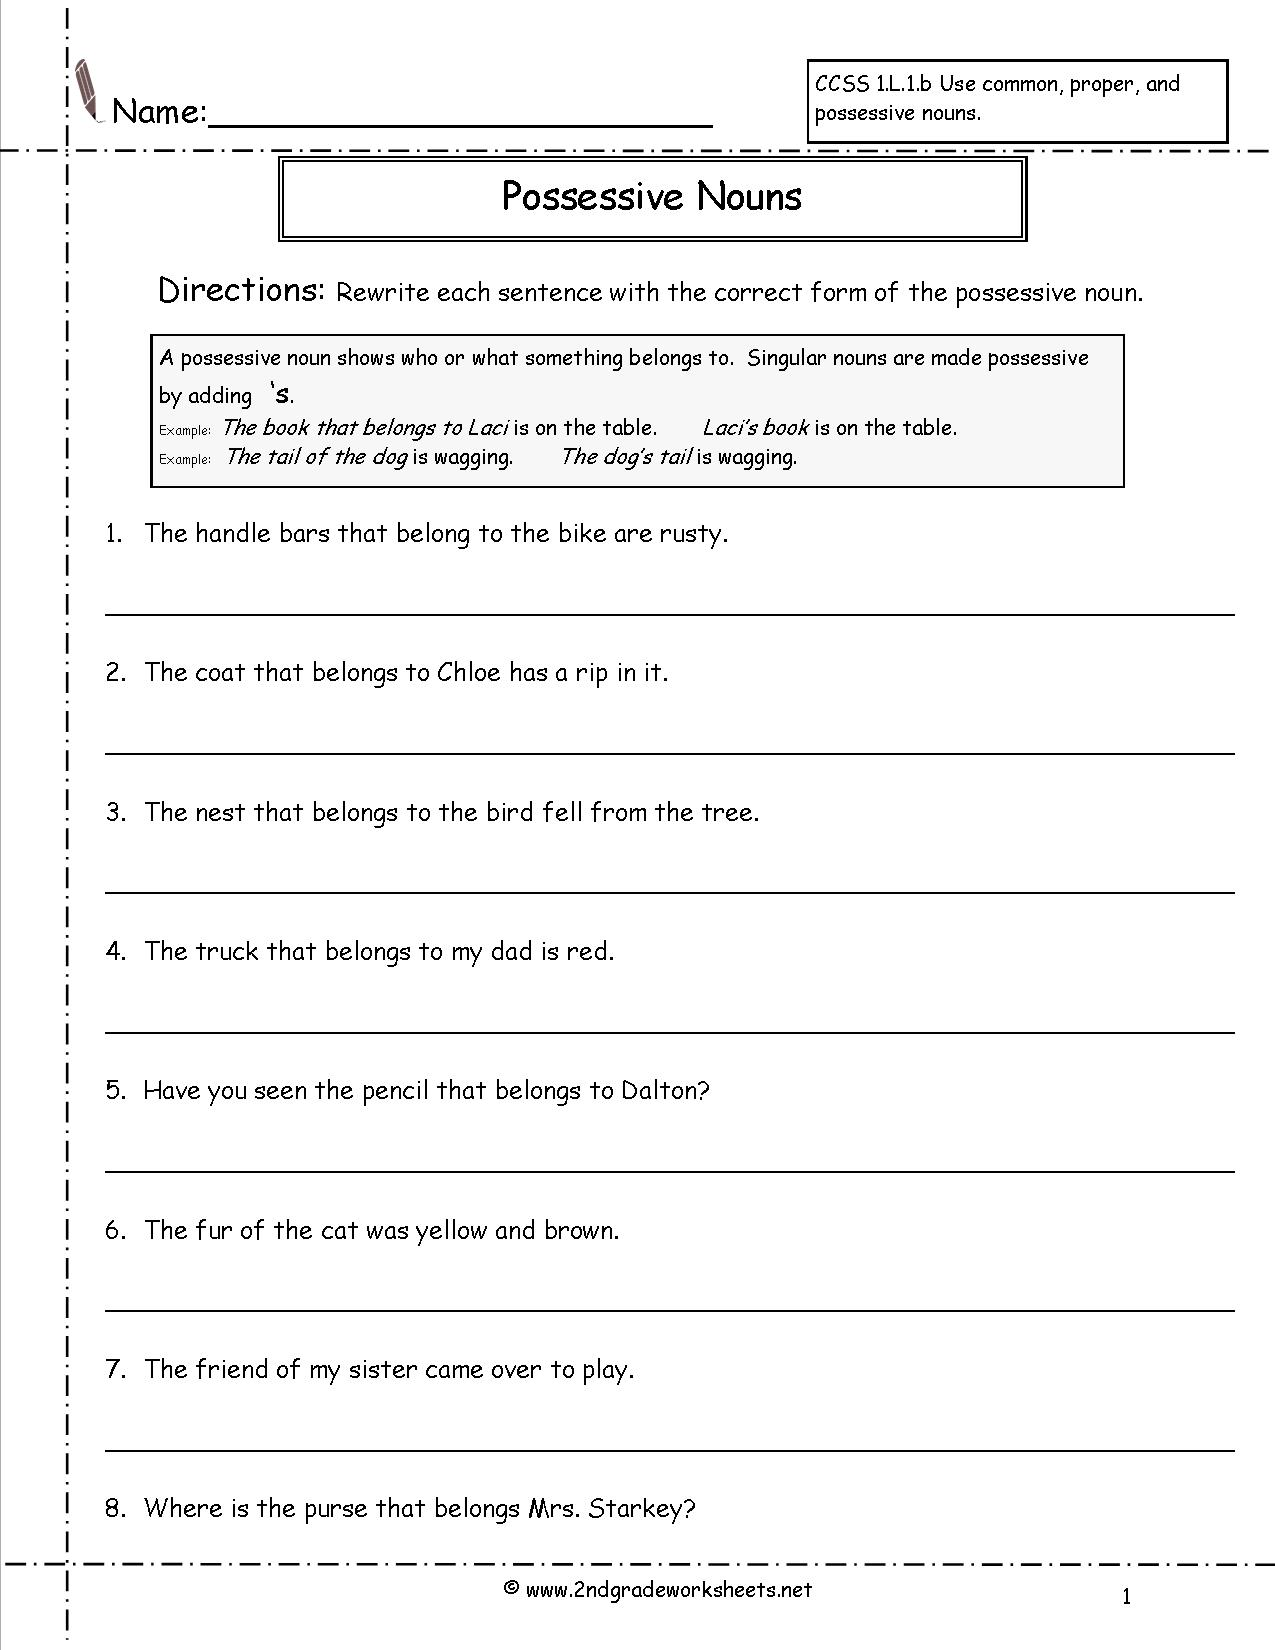 15 Best Images of Making Choices Worksheets 2nd Grade